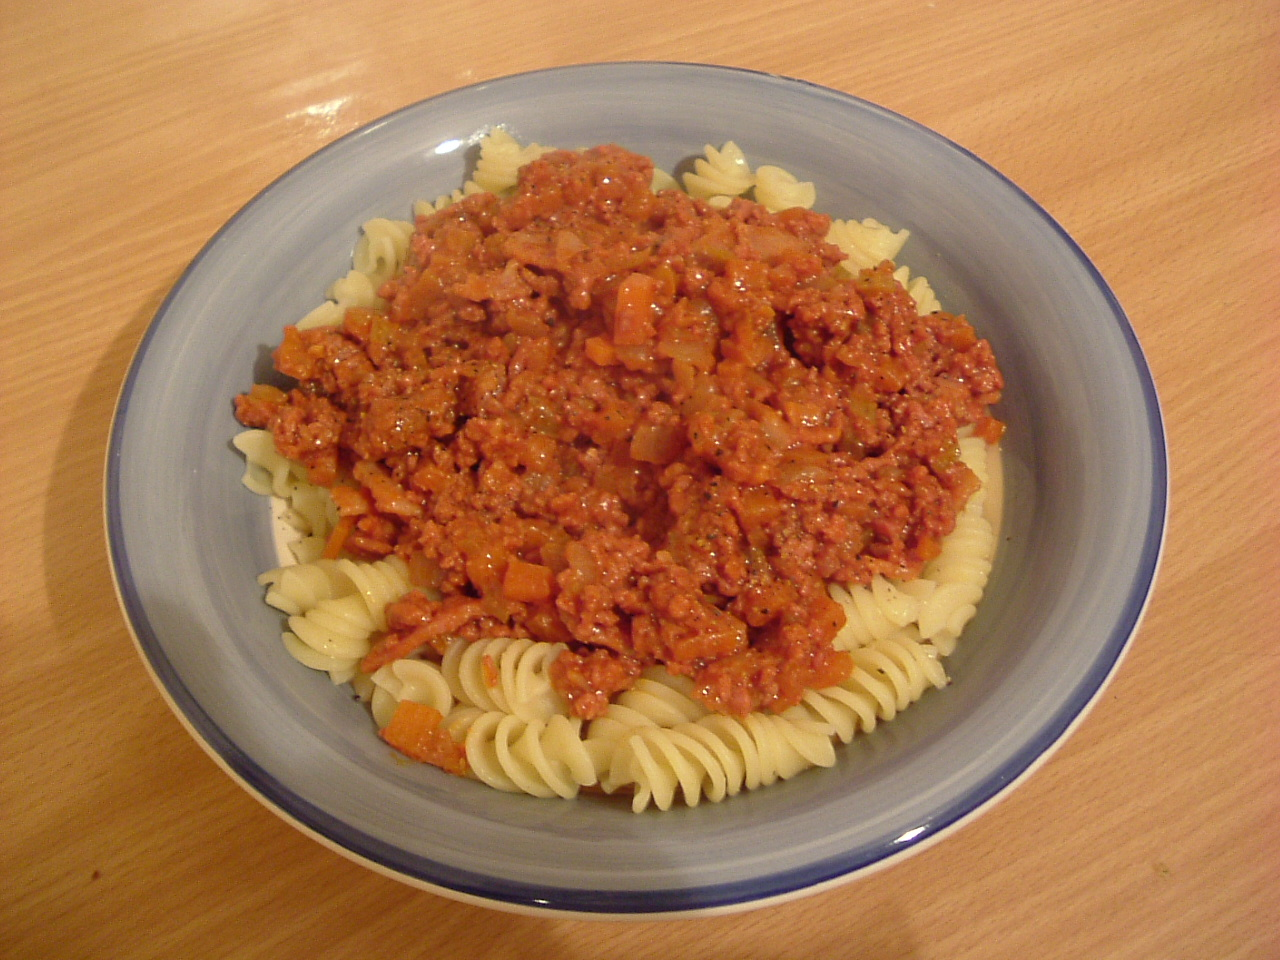 Pasta bolognese made by Rich, on 08/04/2005